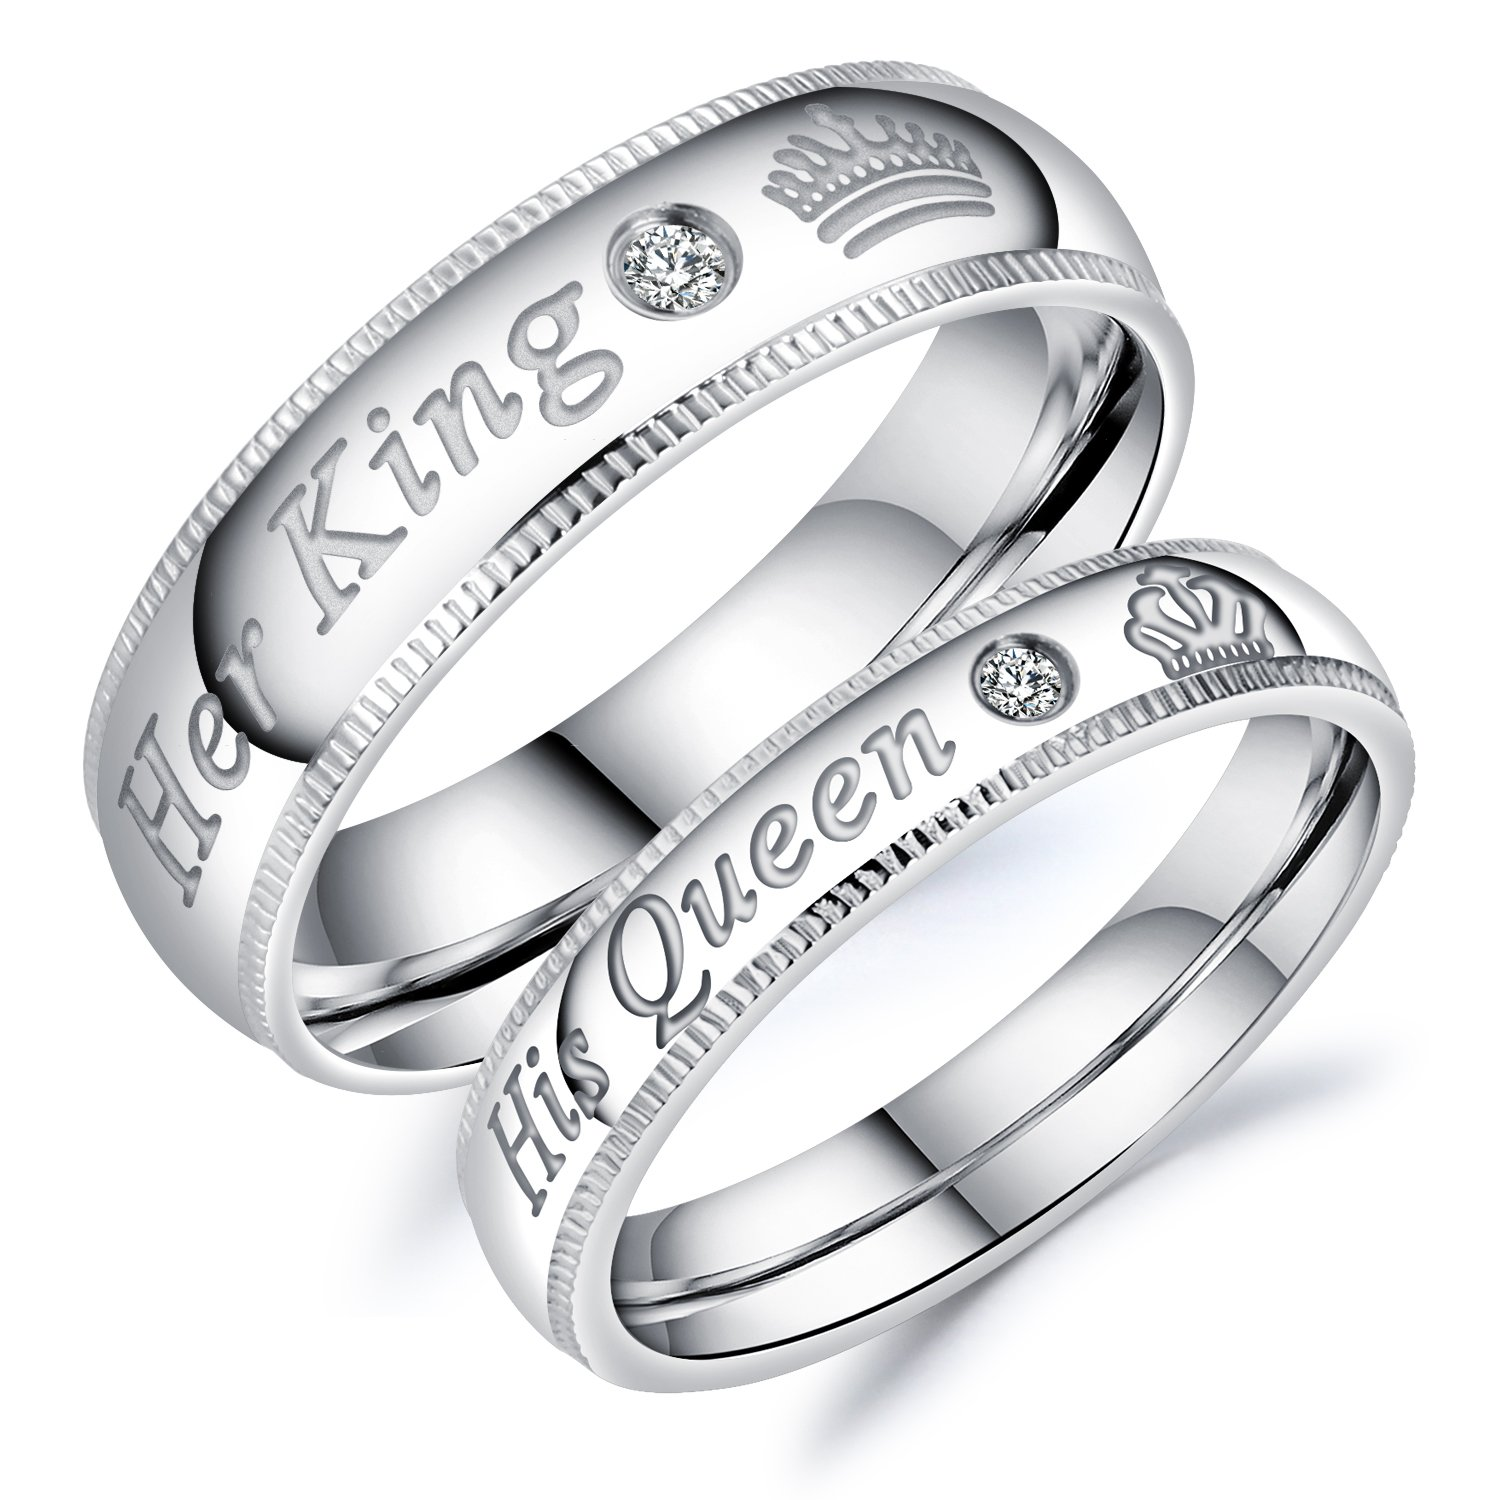 Fate Love Jewelry Stainless Steel Her Queen & His King Wedding Couple Ring Band Matching Set, Love Gift